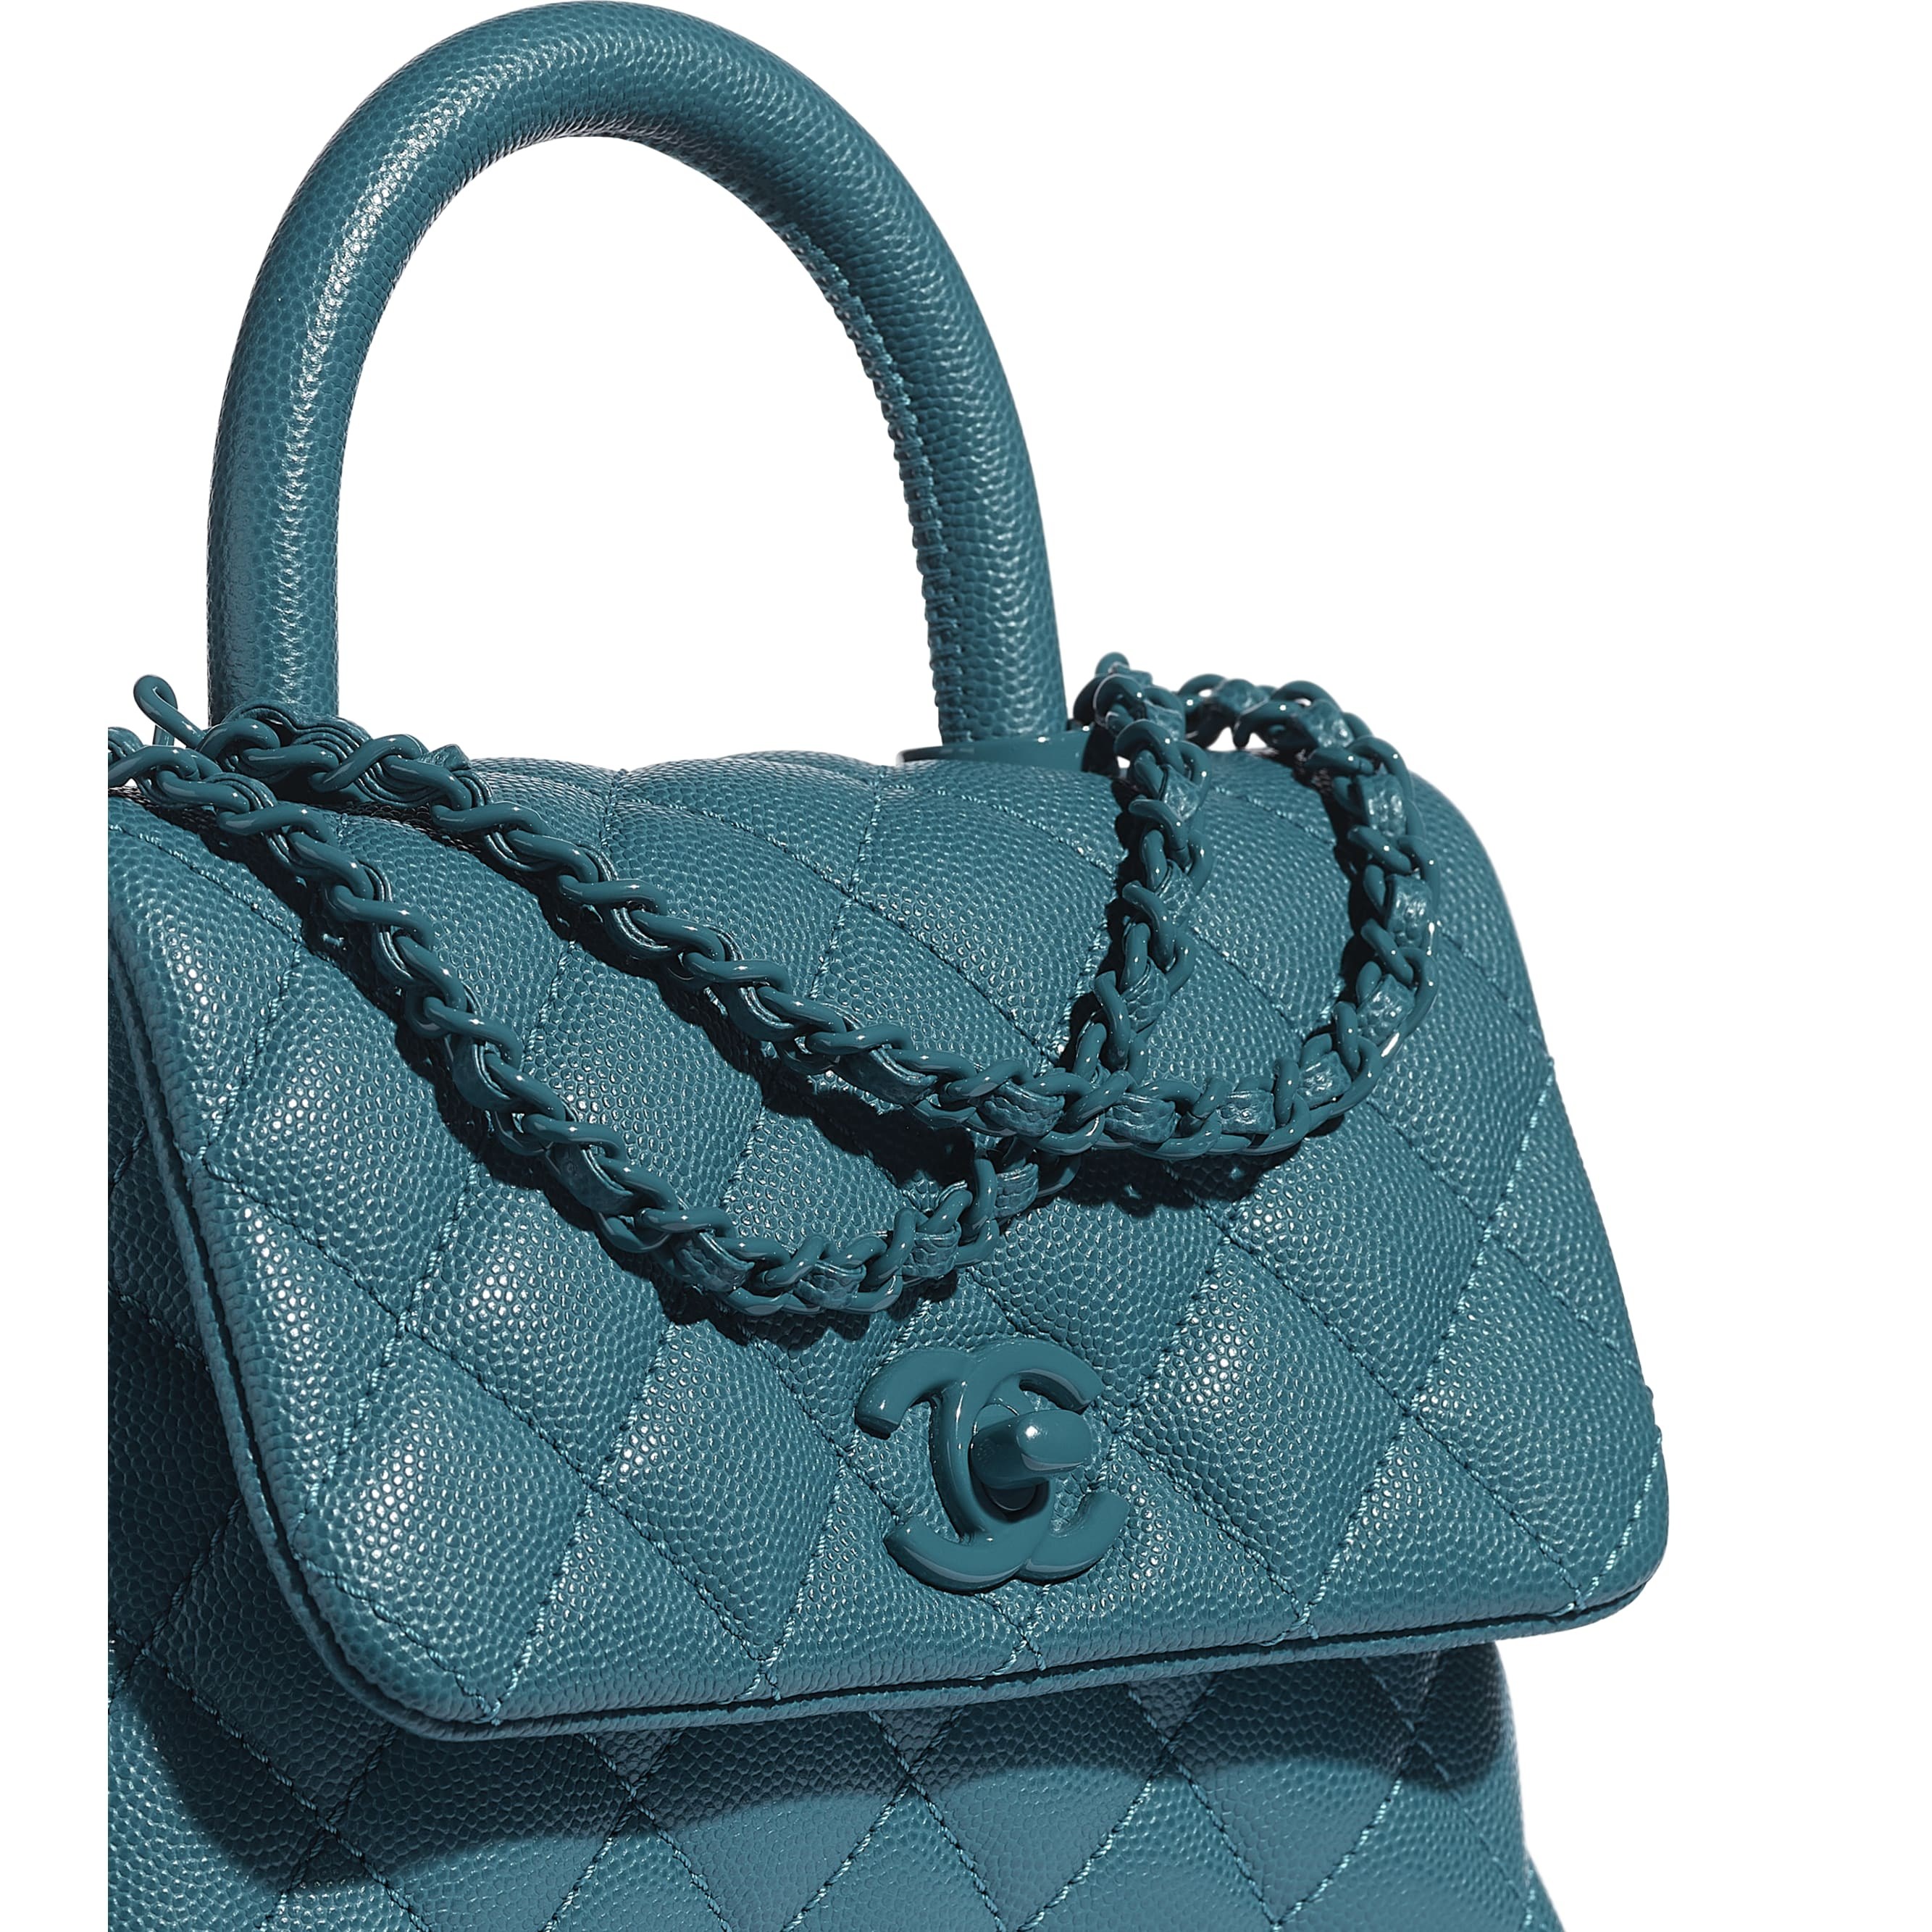 Mini Flap Bag with Handle - Turquoise - Grained Calfskin & Lacquered Metal - CHANEL - Extra view - see standard sized version